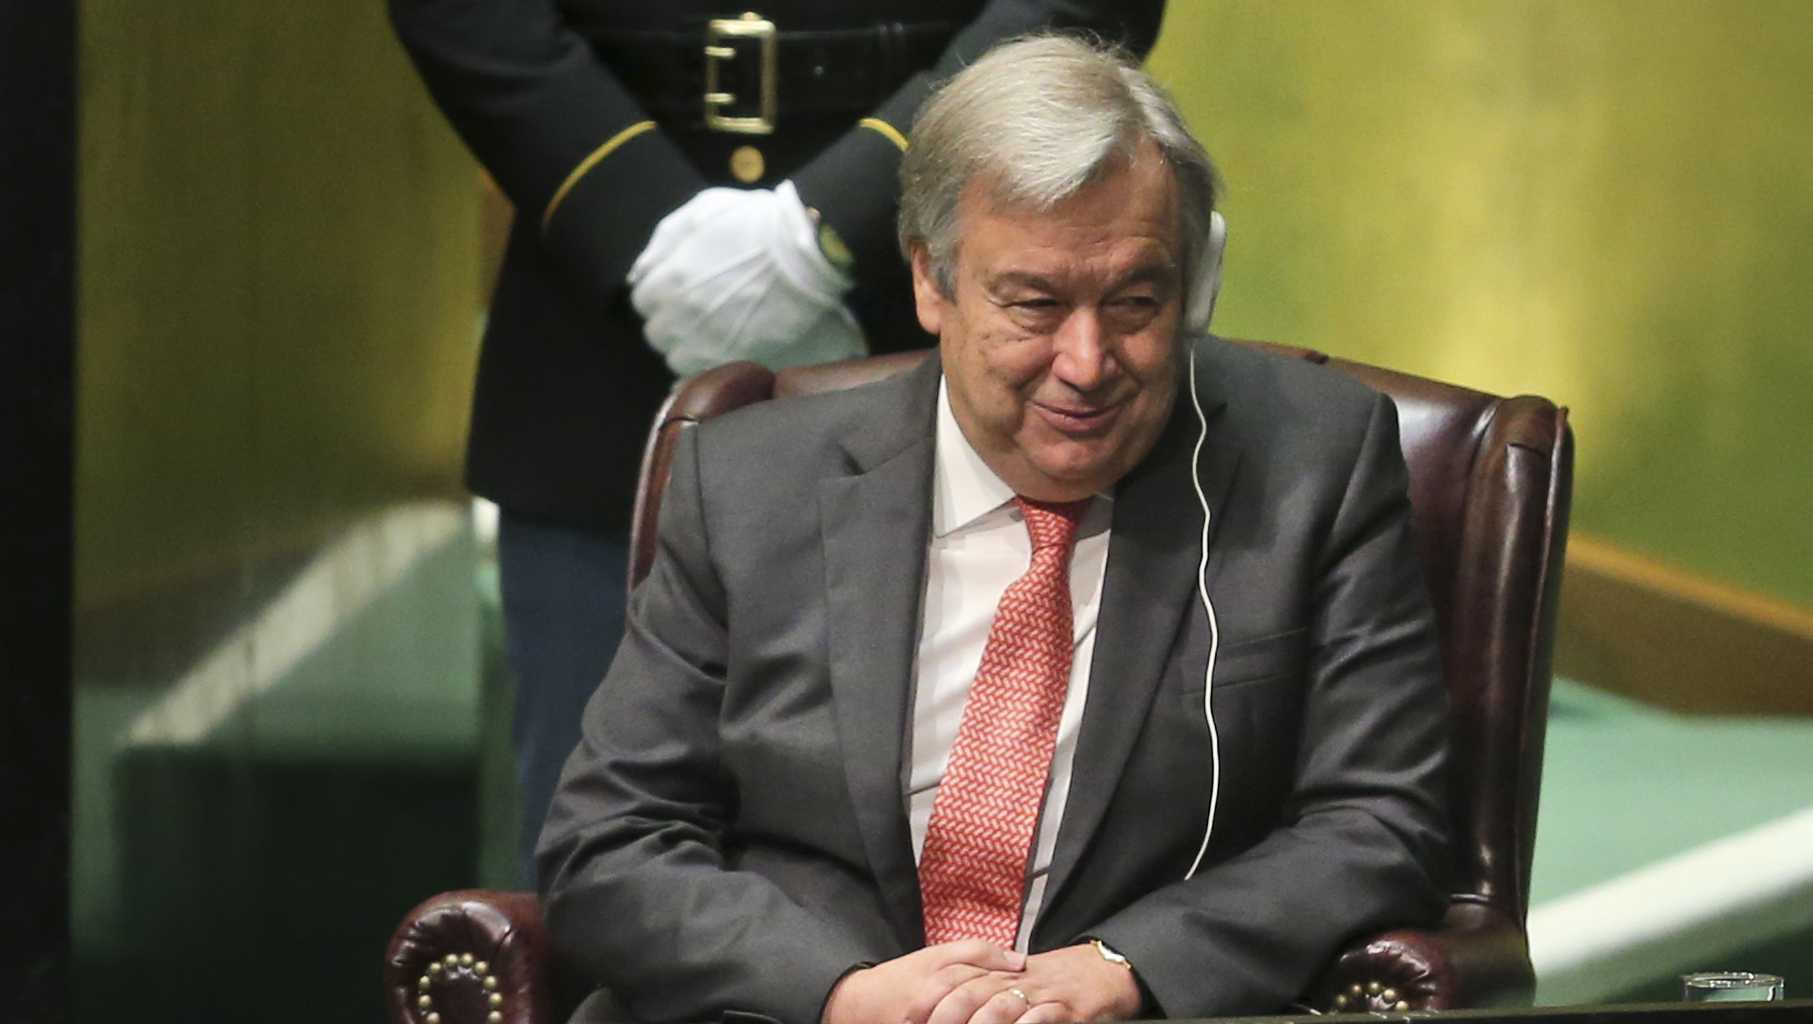 Antonio Guterres of Portugal, Secretary-General designate of the United Nations, sits on the podium during his appointment.